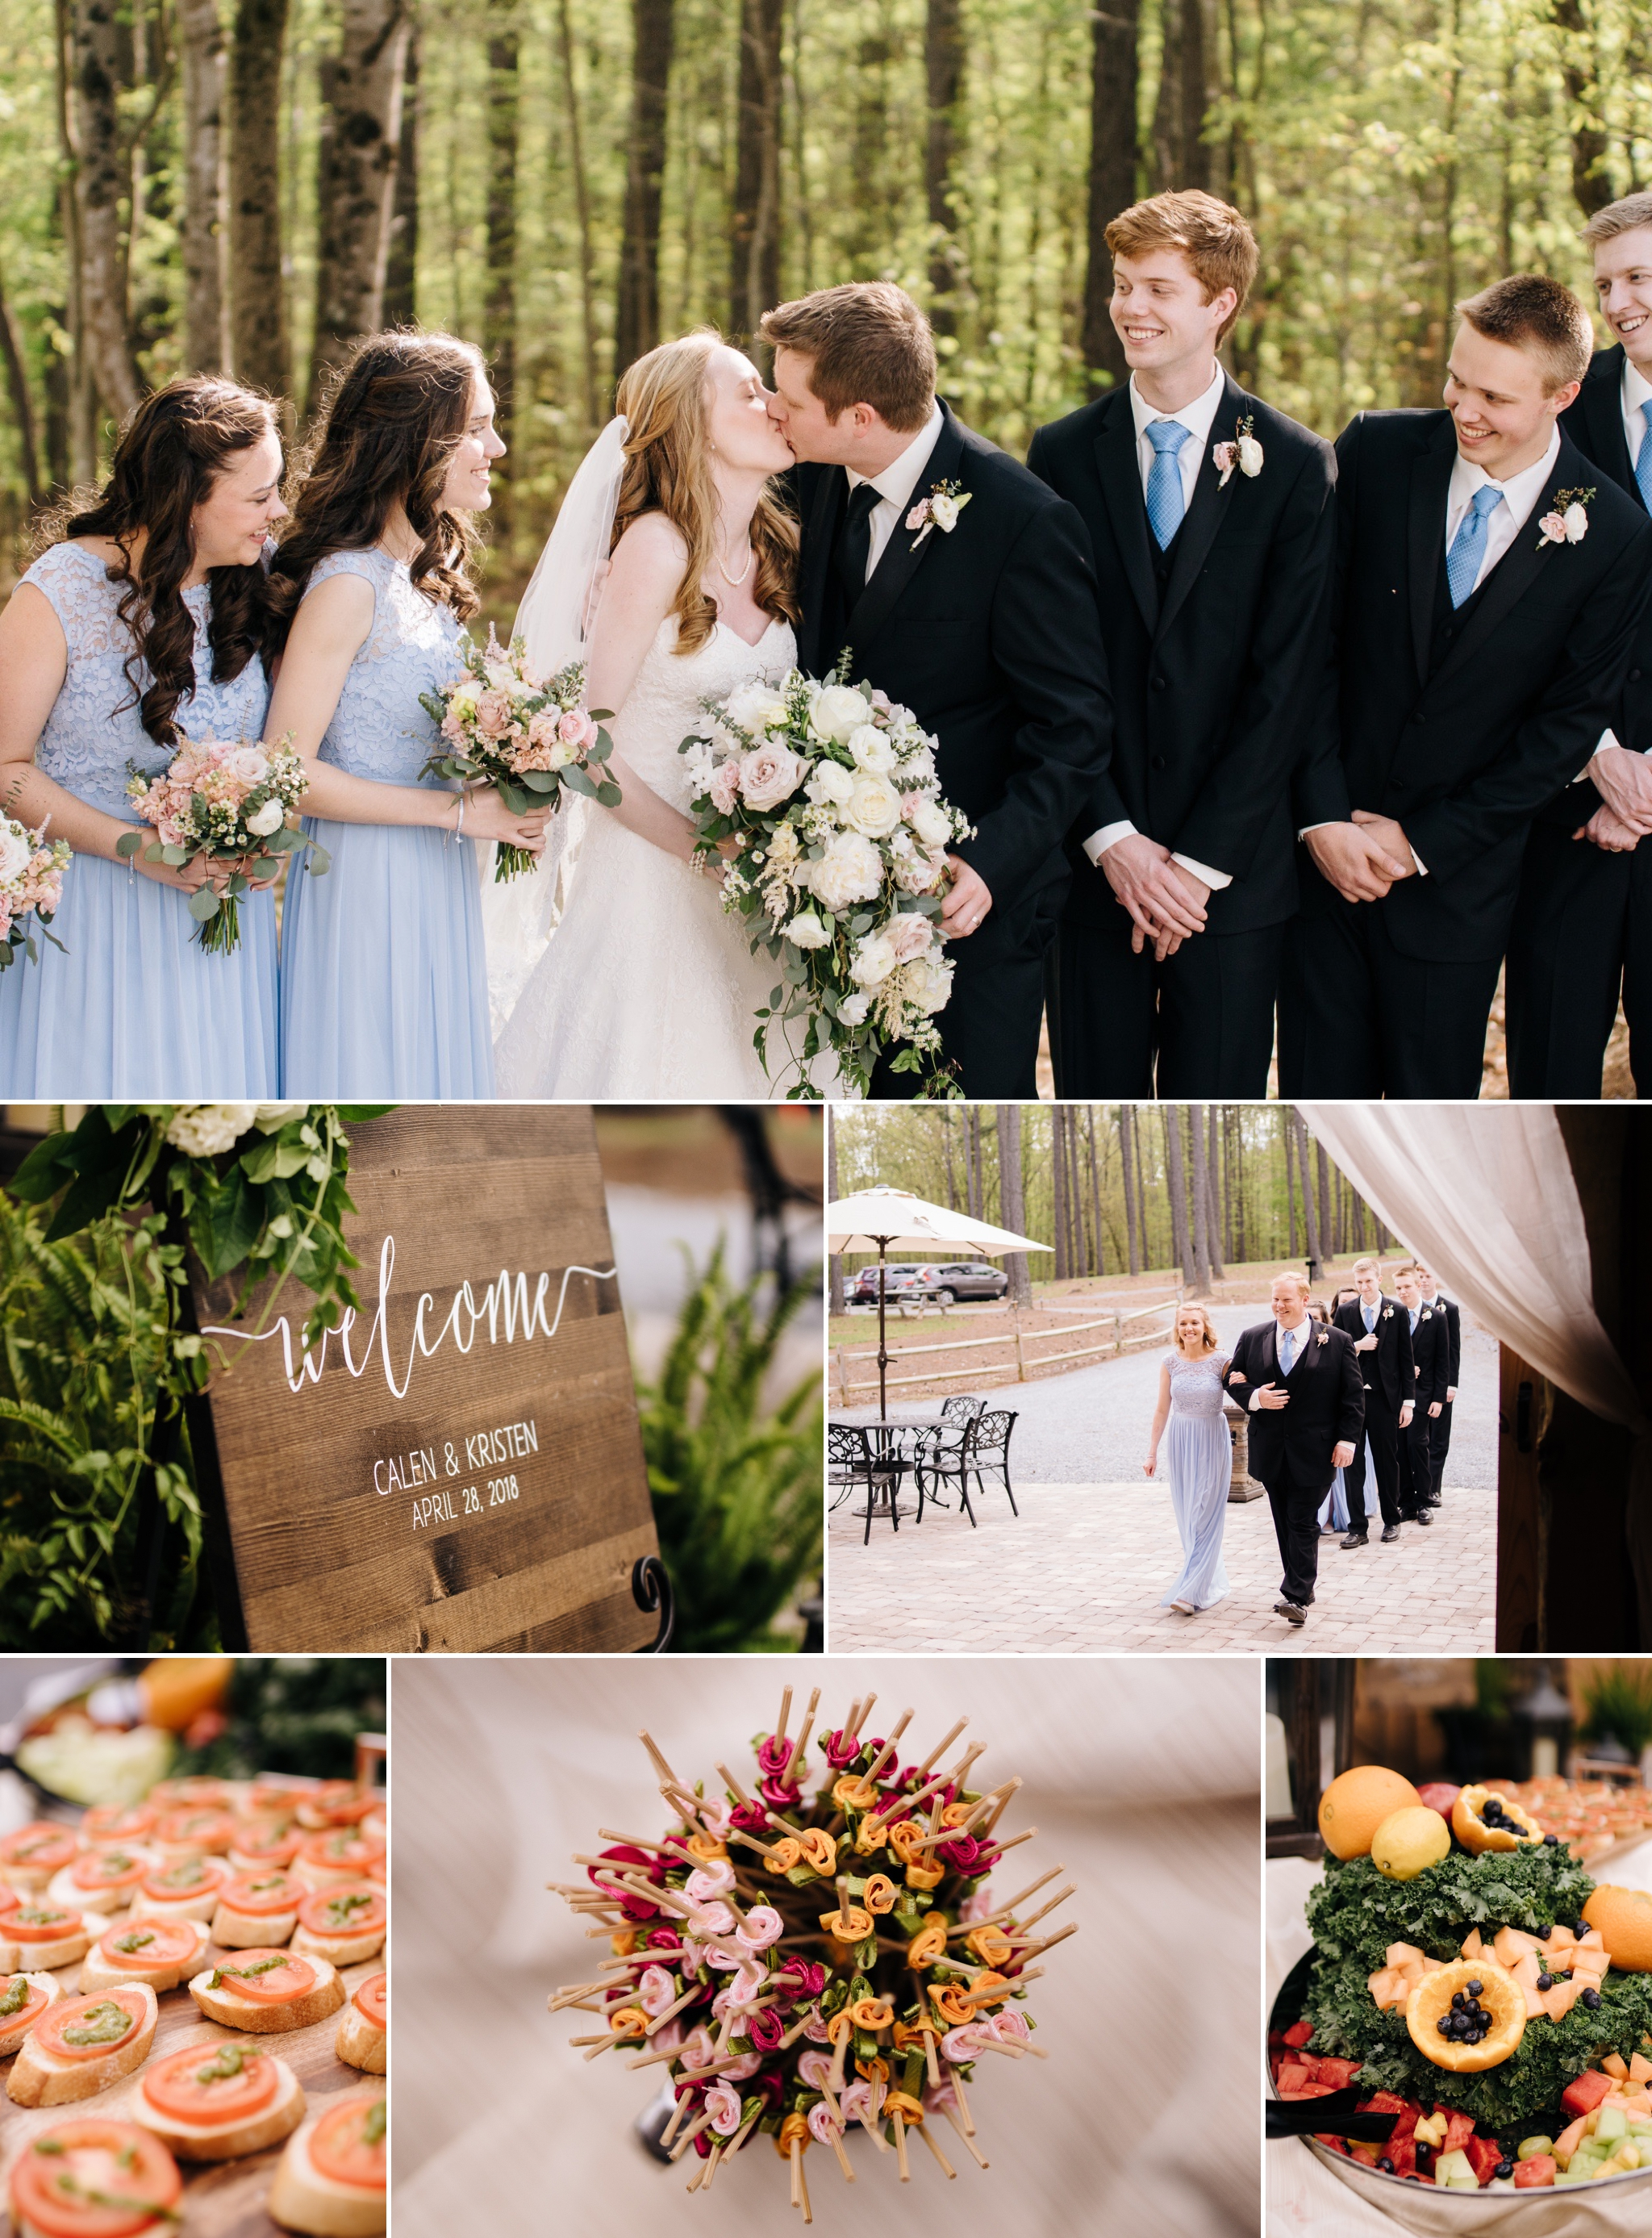 sierra vista black tie spring wedding lynchburg forest va jonathan hannah photography